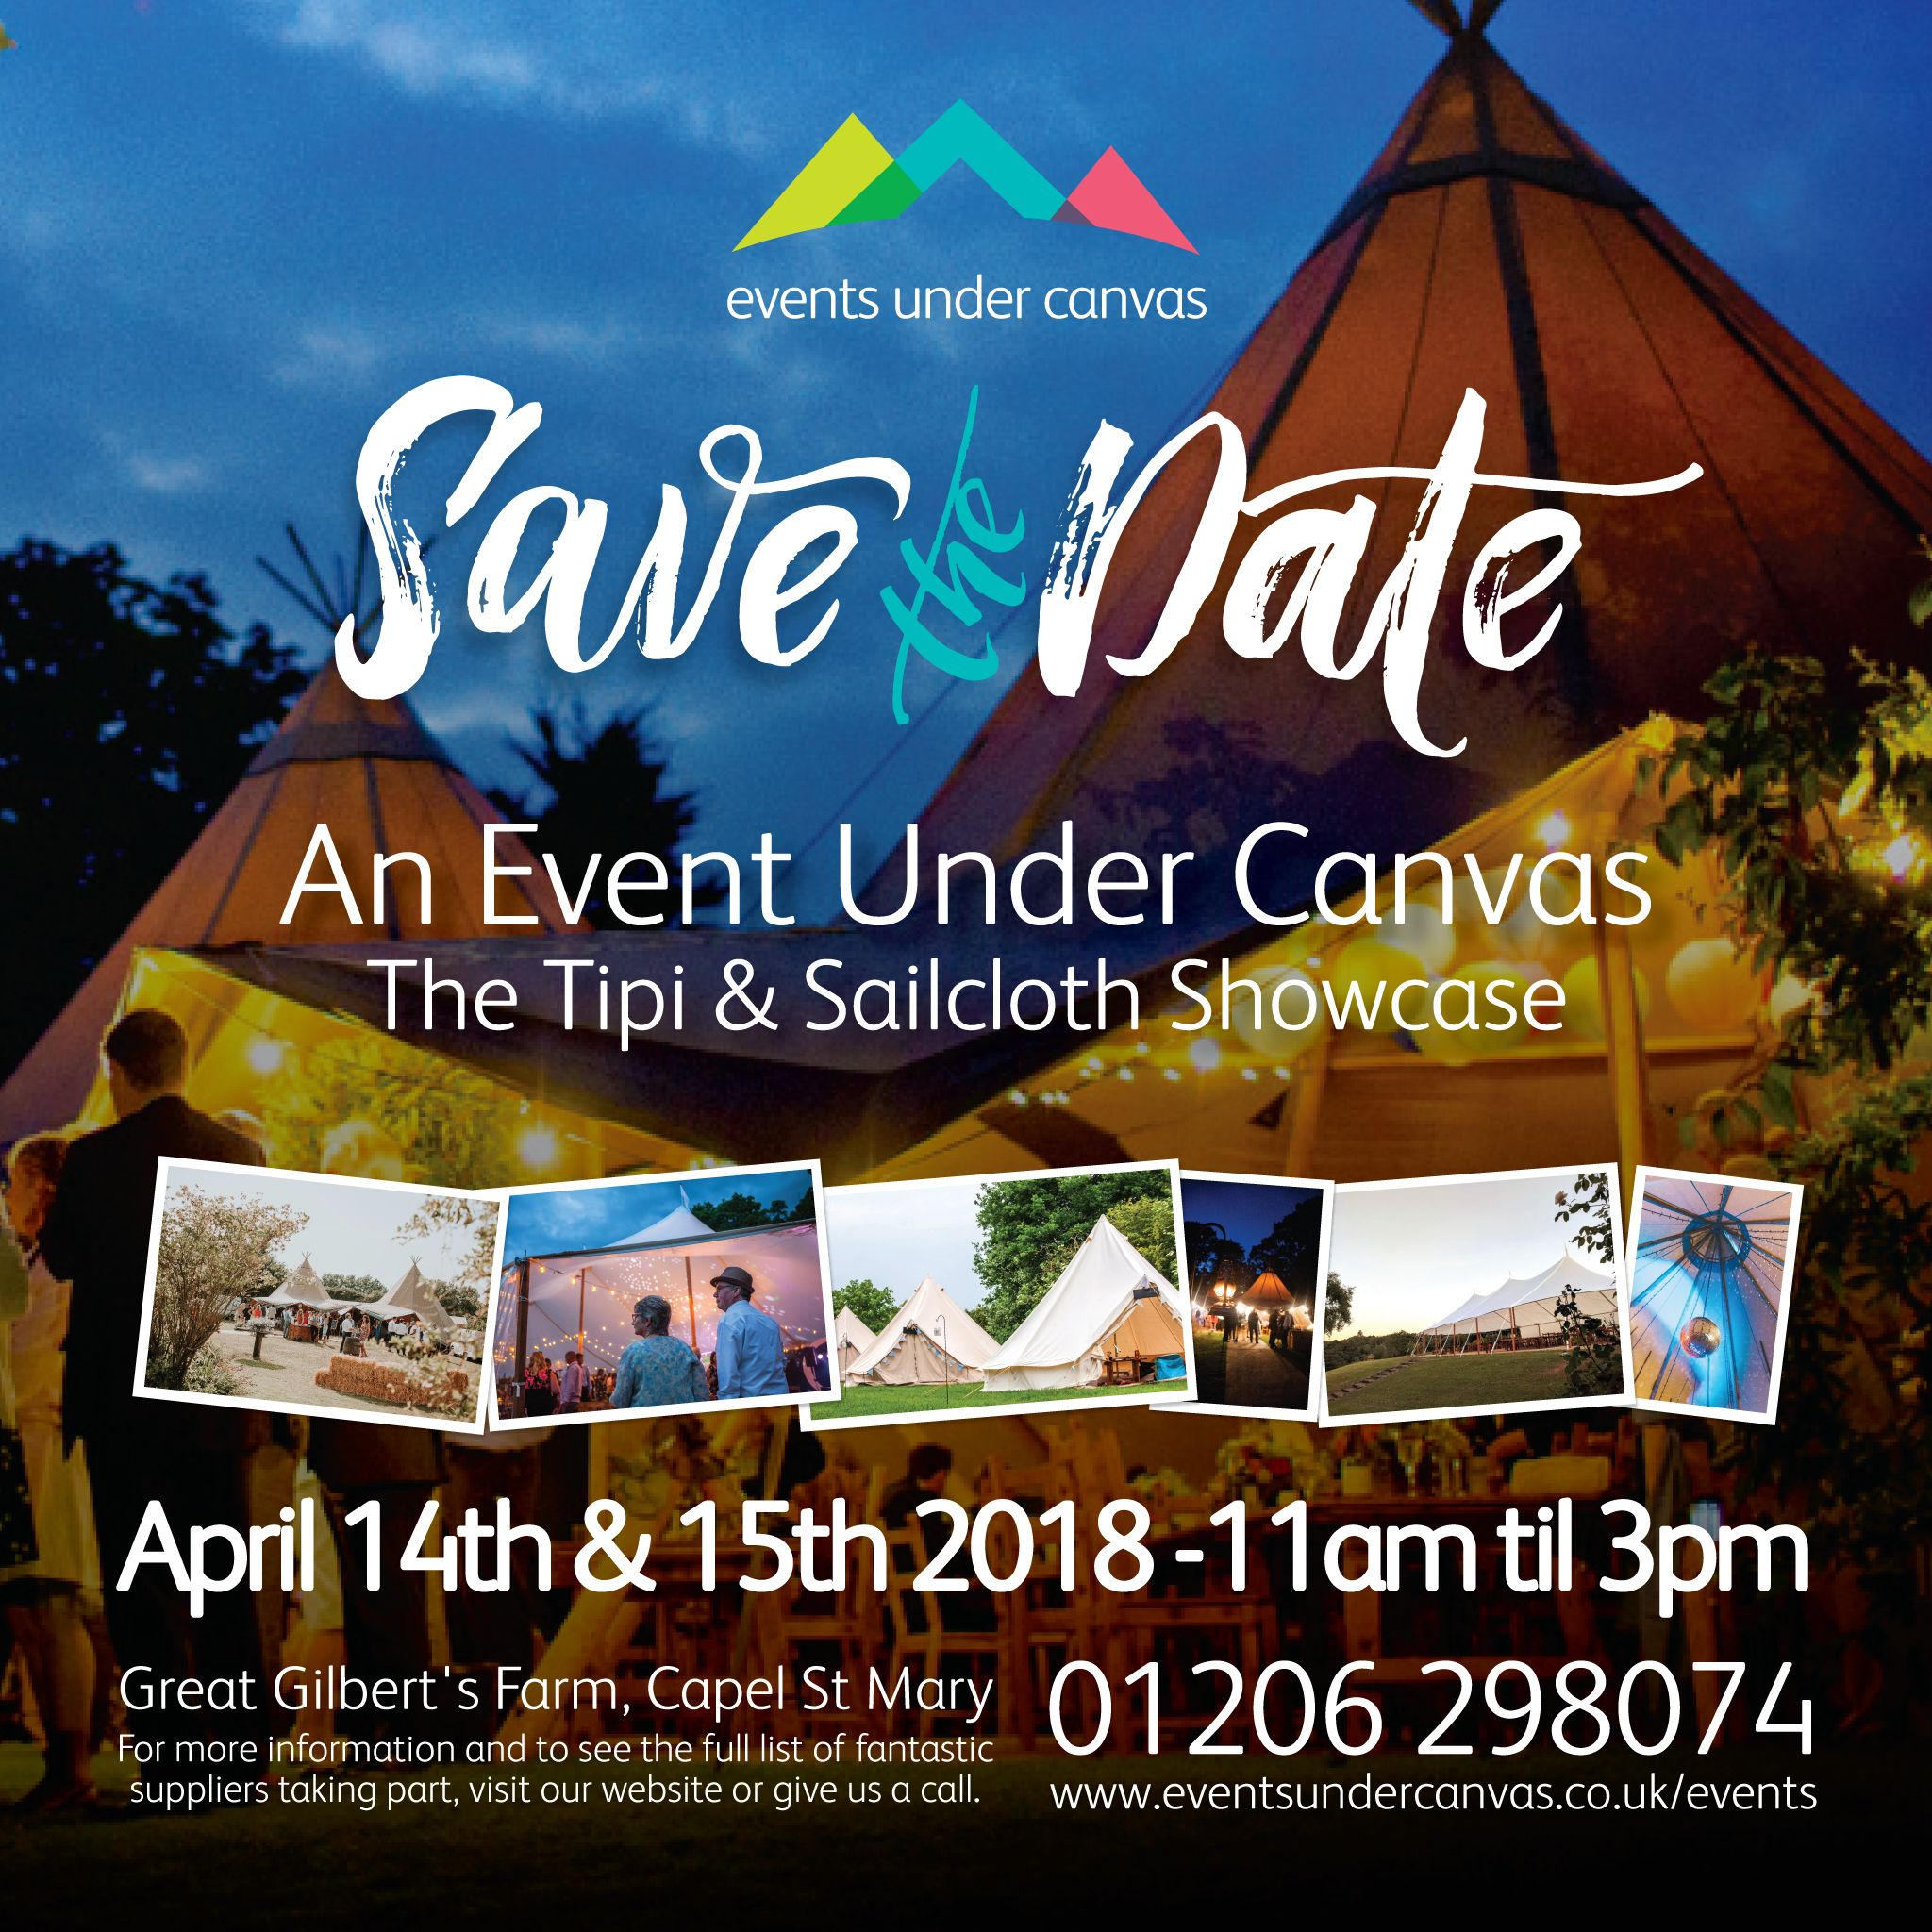 Save the date for tipis & sailcloth tents